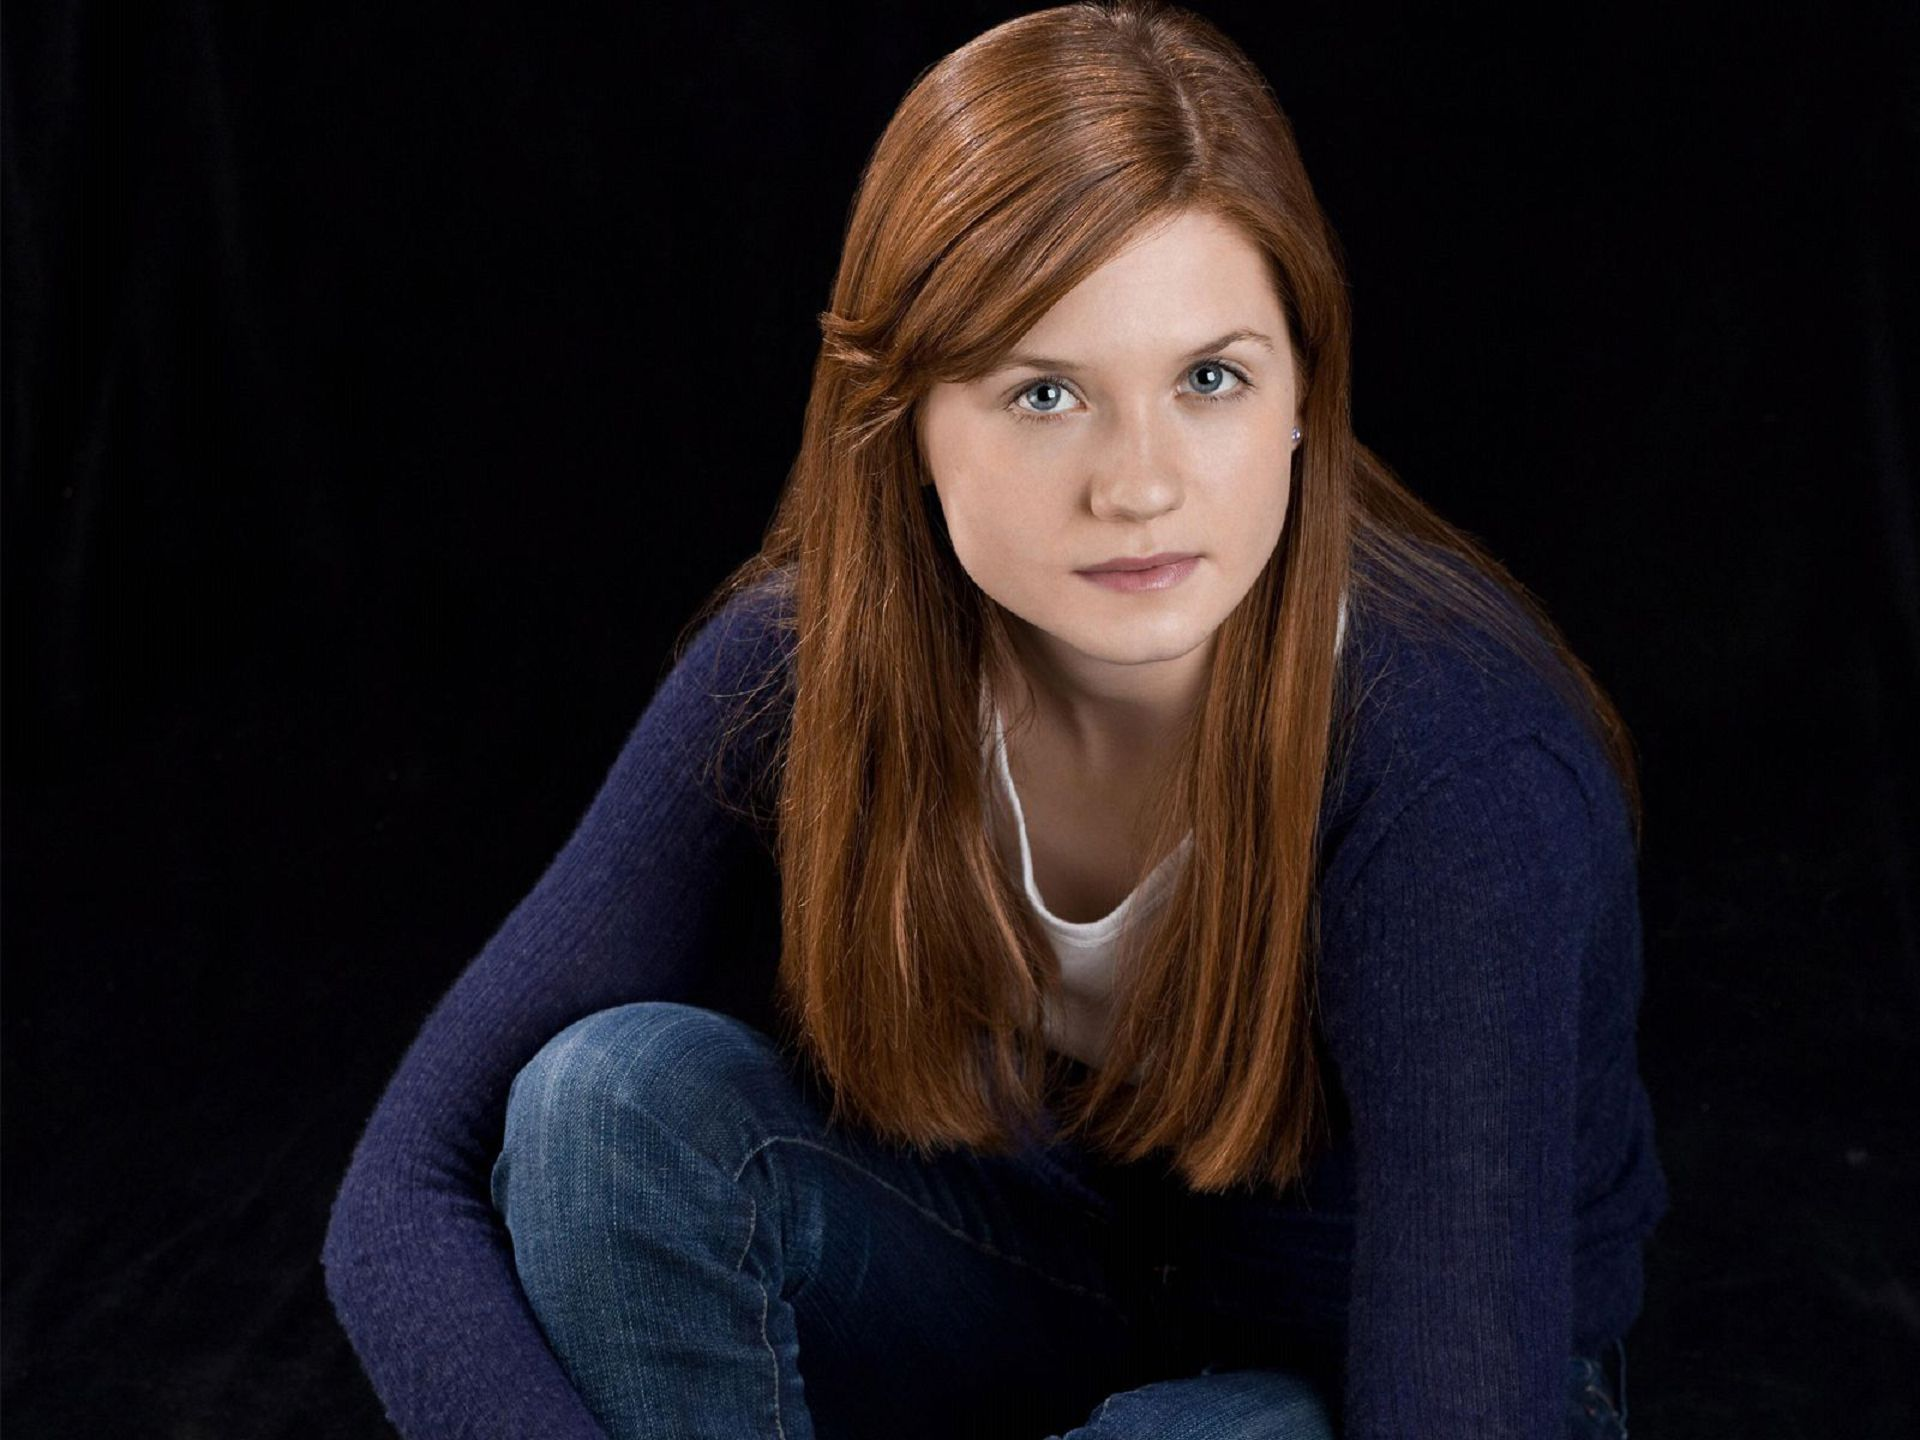 1920x1440 - Bonnie Wright Wallpapers 12